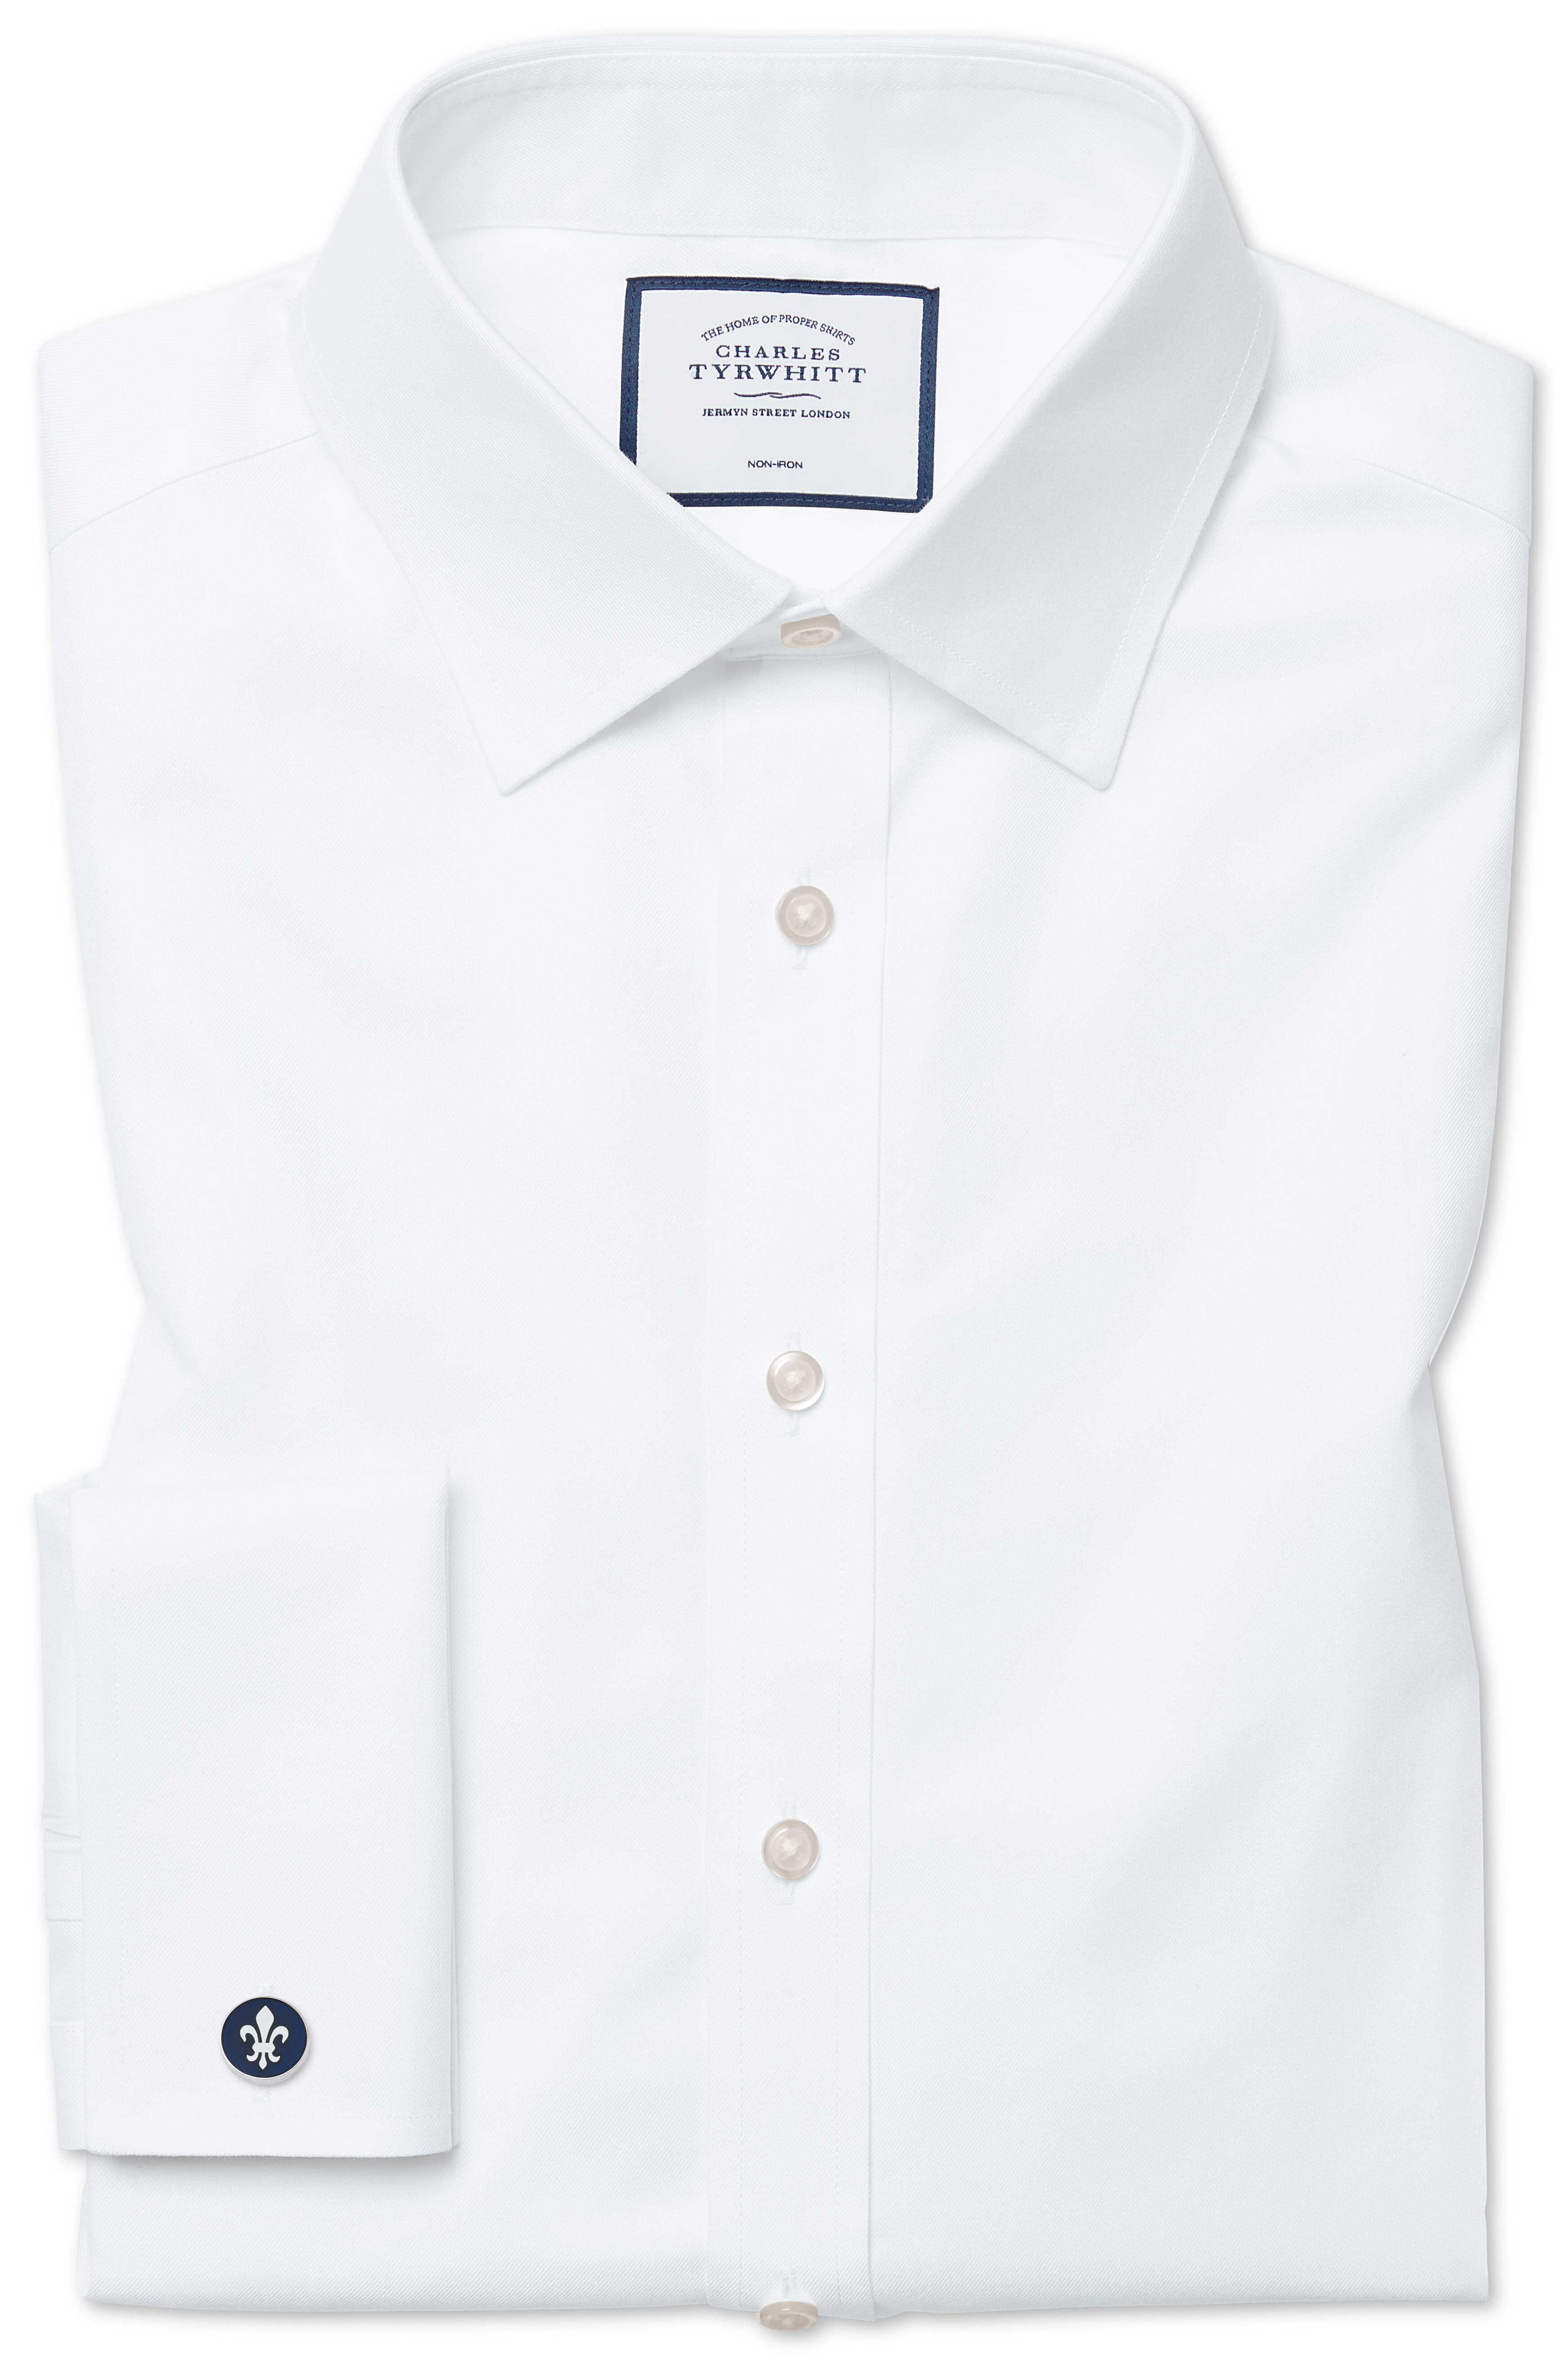 Slim Fit Non-Iron Twill White Cotton Formal Shirt Single Cuff Size 14.5/33 by Charles Tyrwhitt